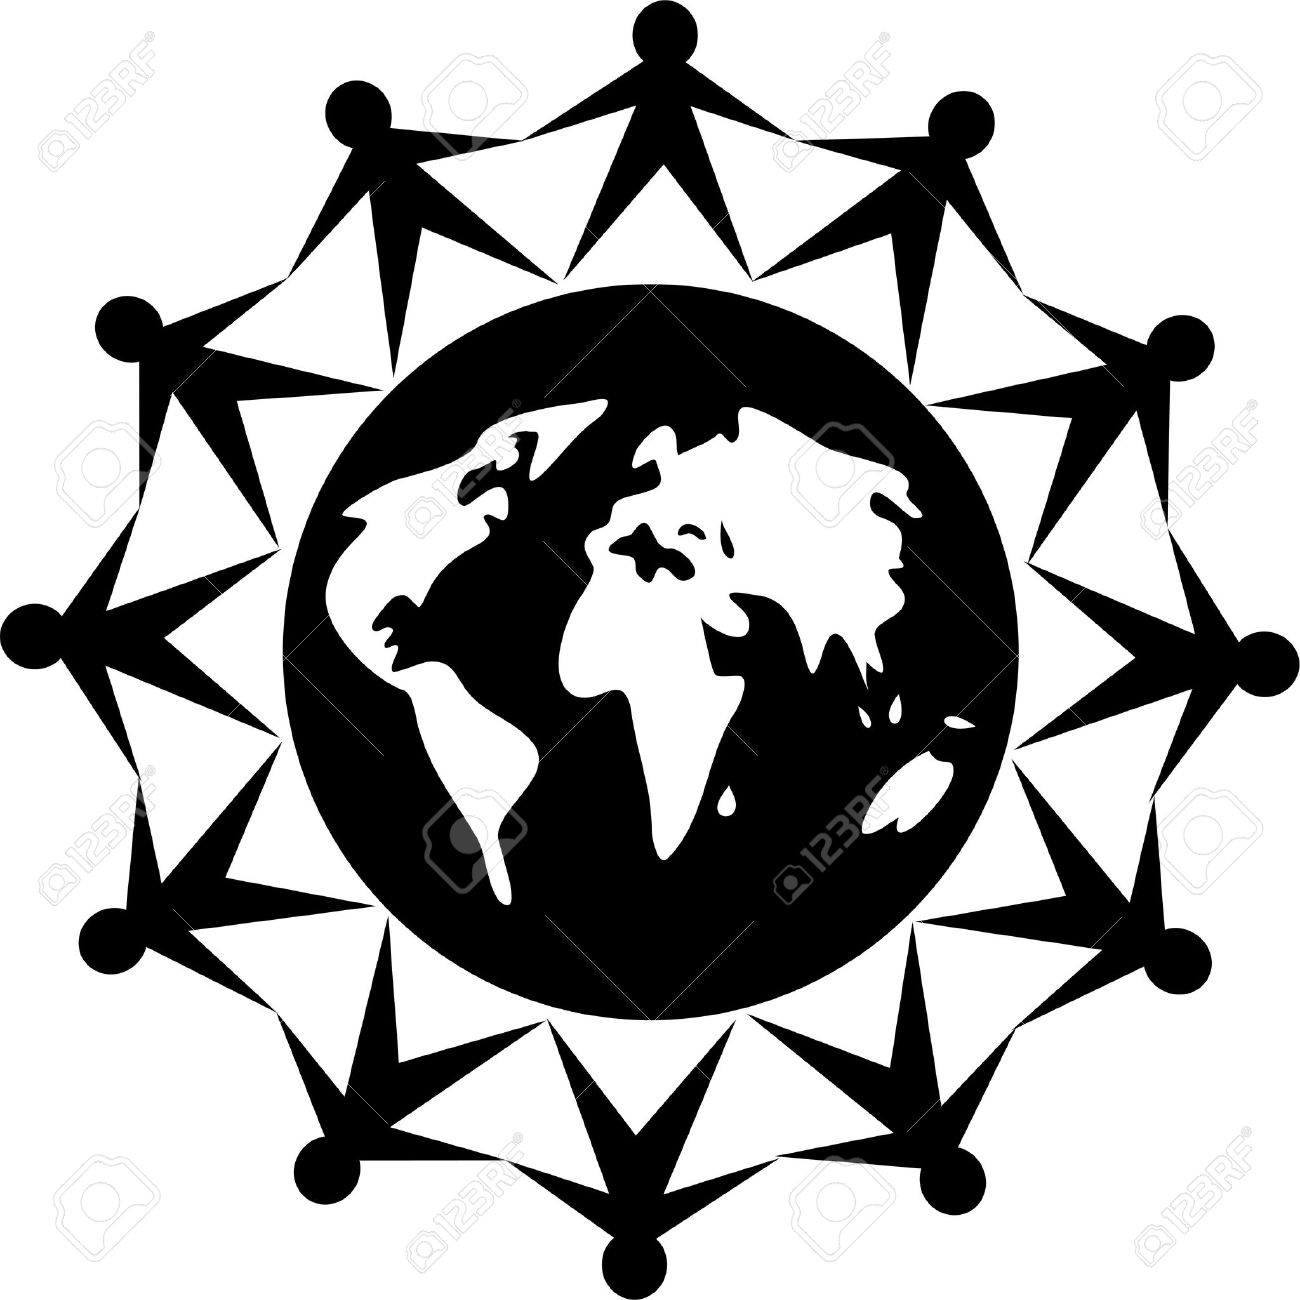 black and white icon style image of united people around the...